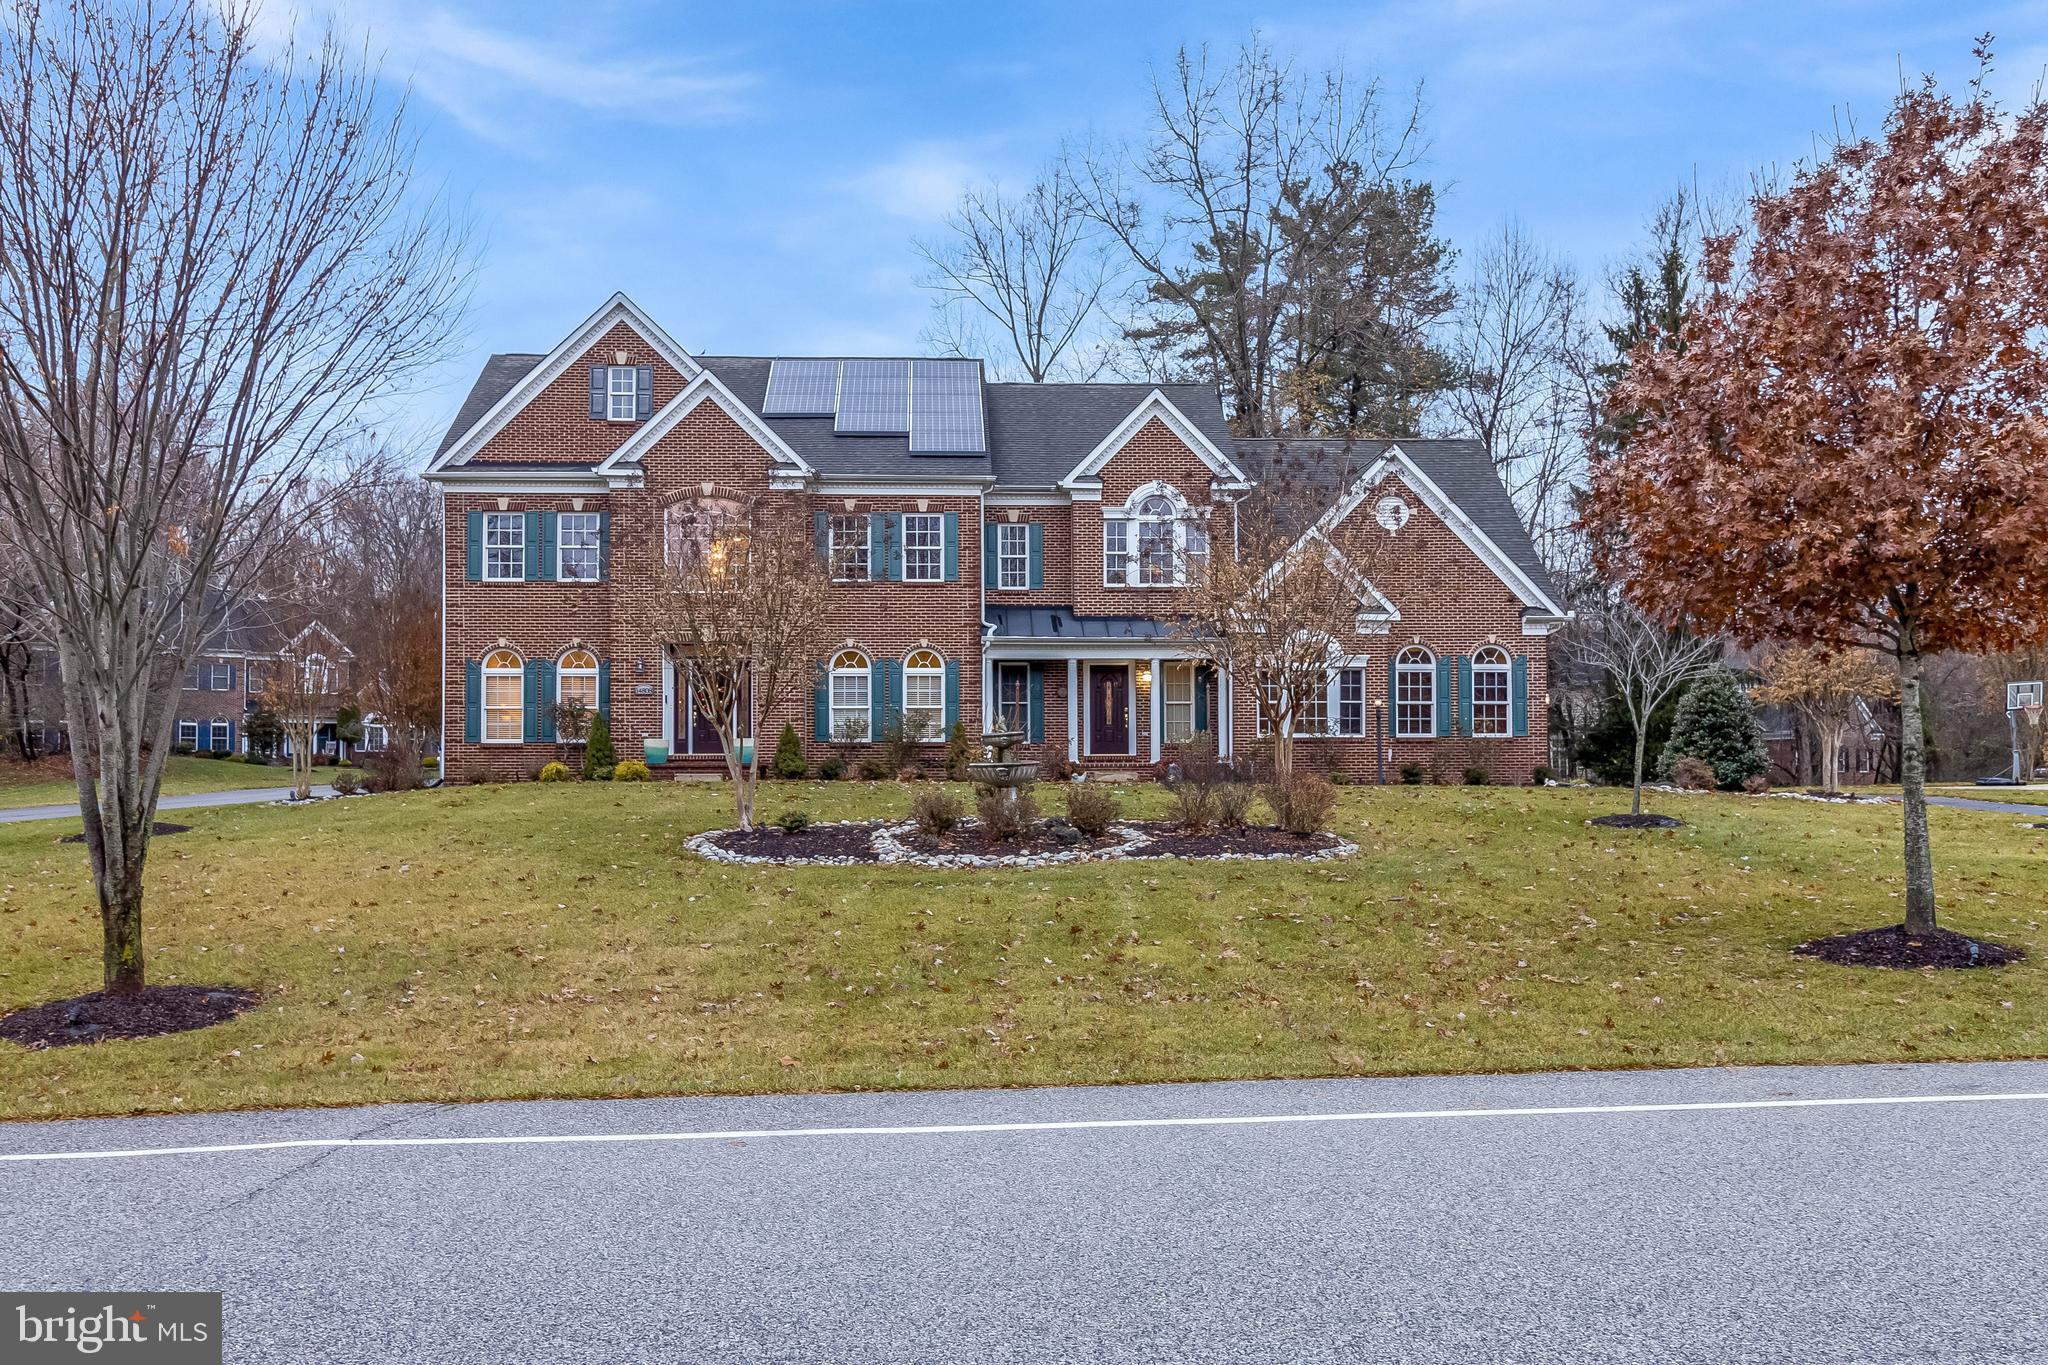 14808 DOLPHIN WAY, BOWIE, MD 20721